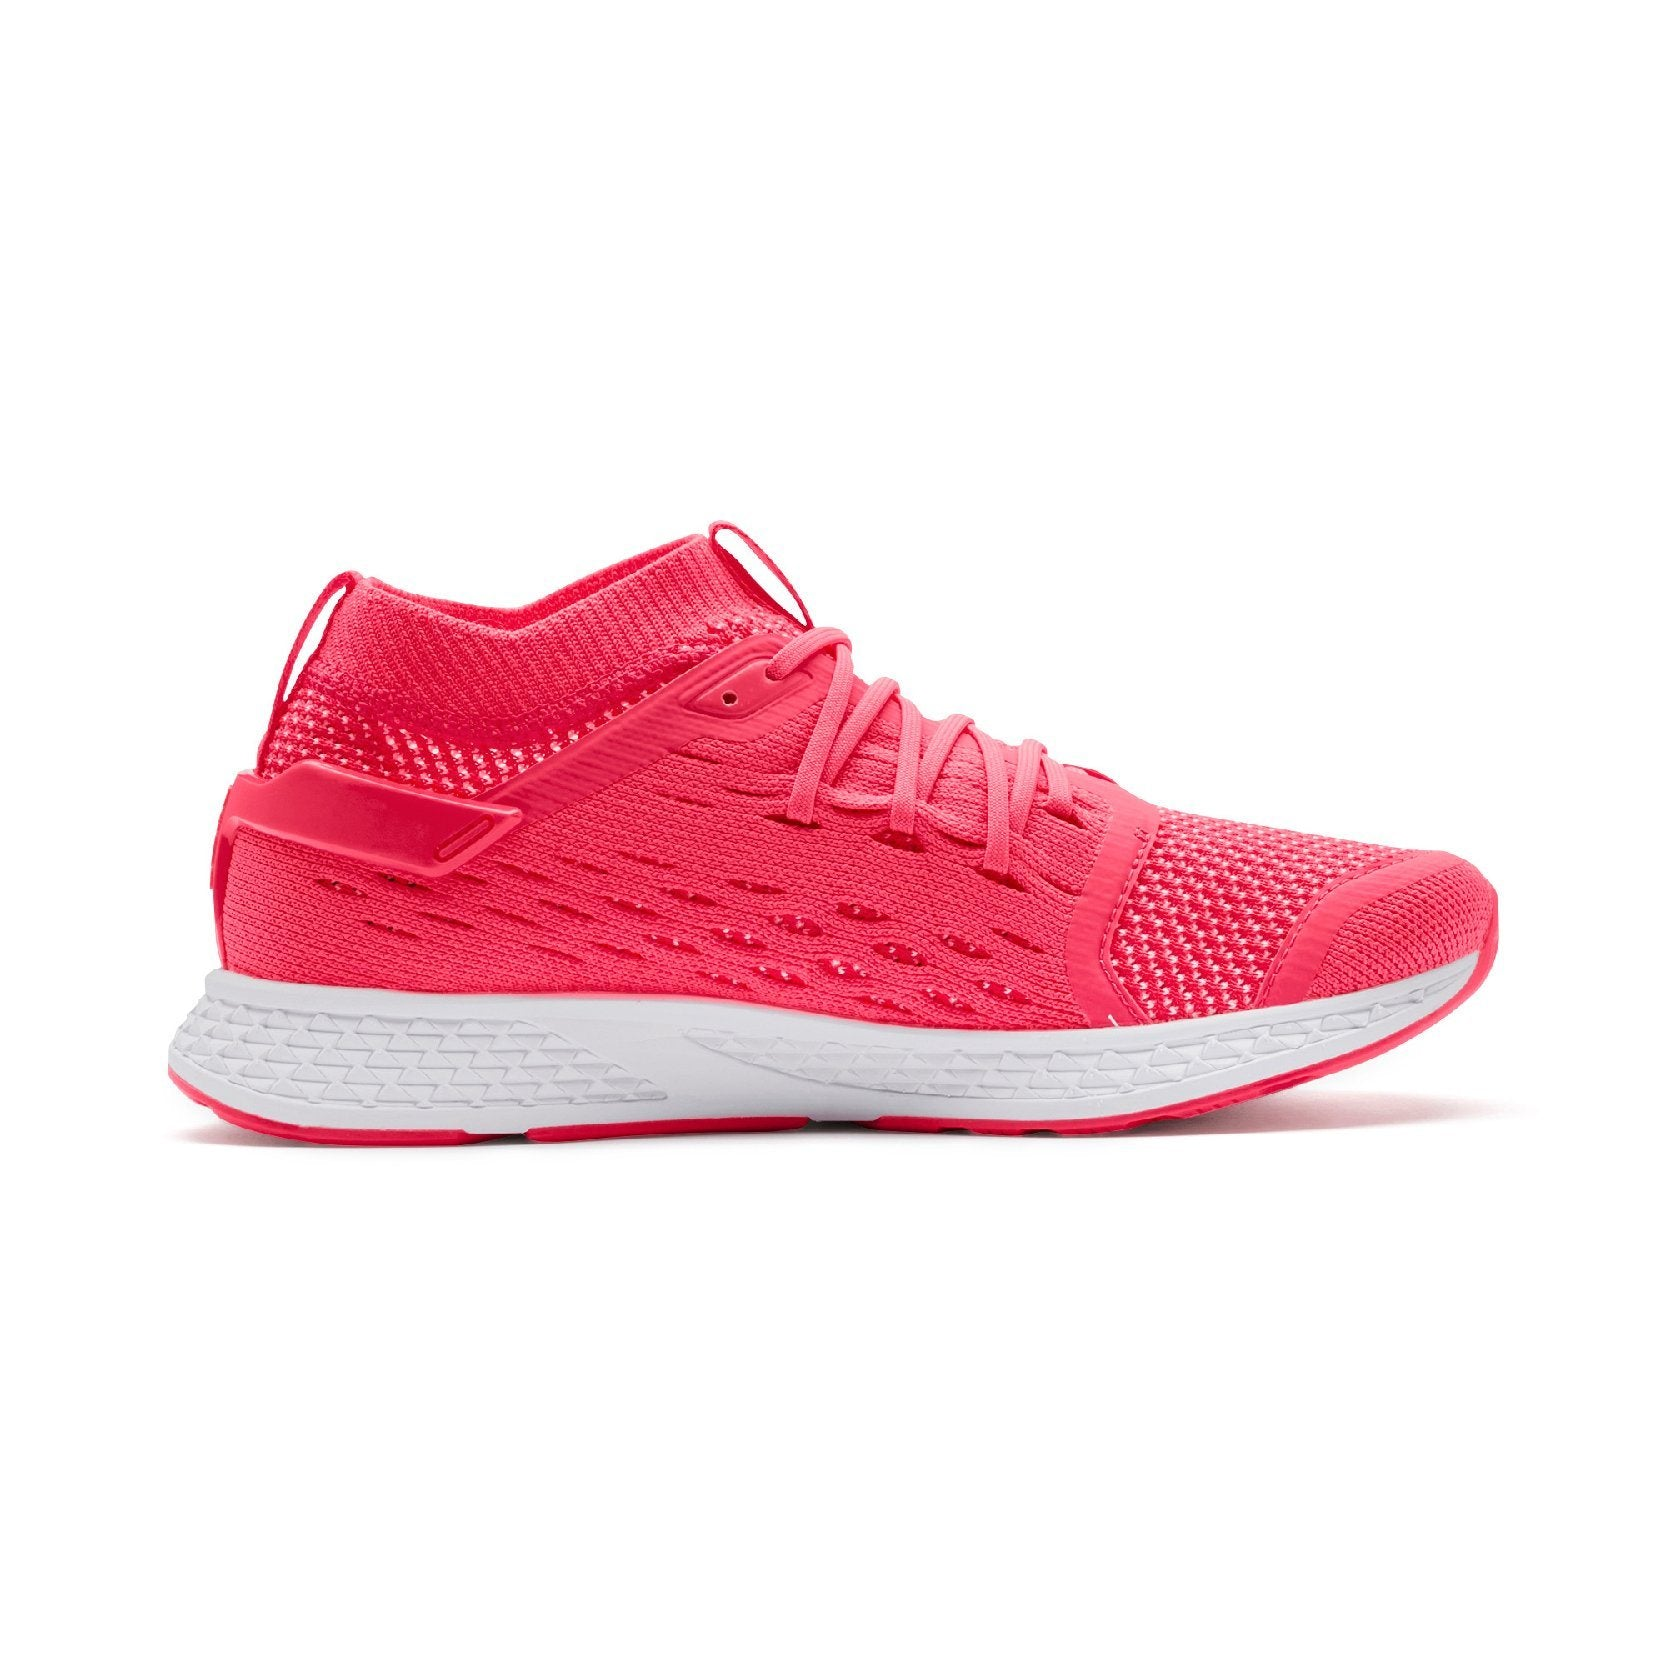 Puma Speed 500 (Women's) Shoes - Women Puma